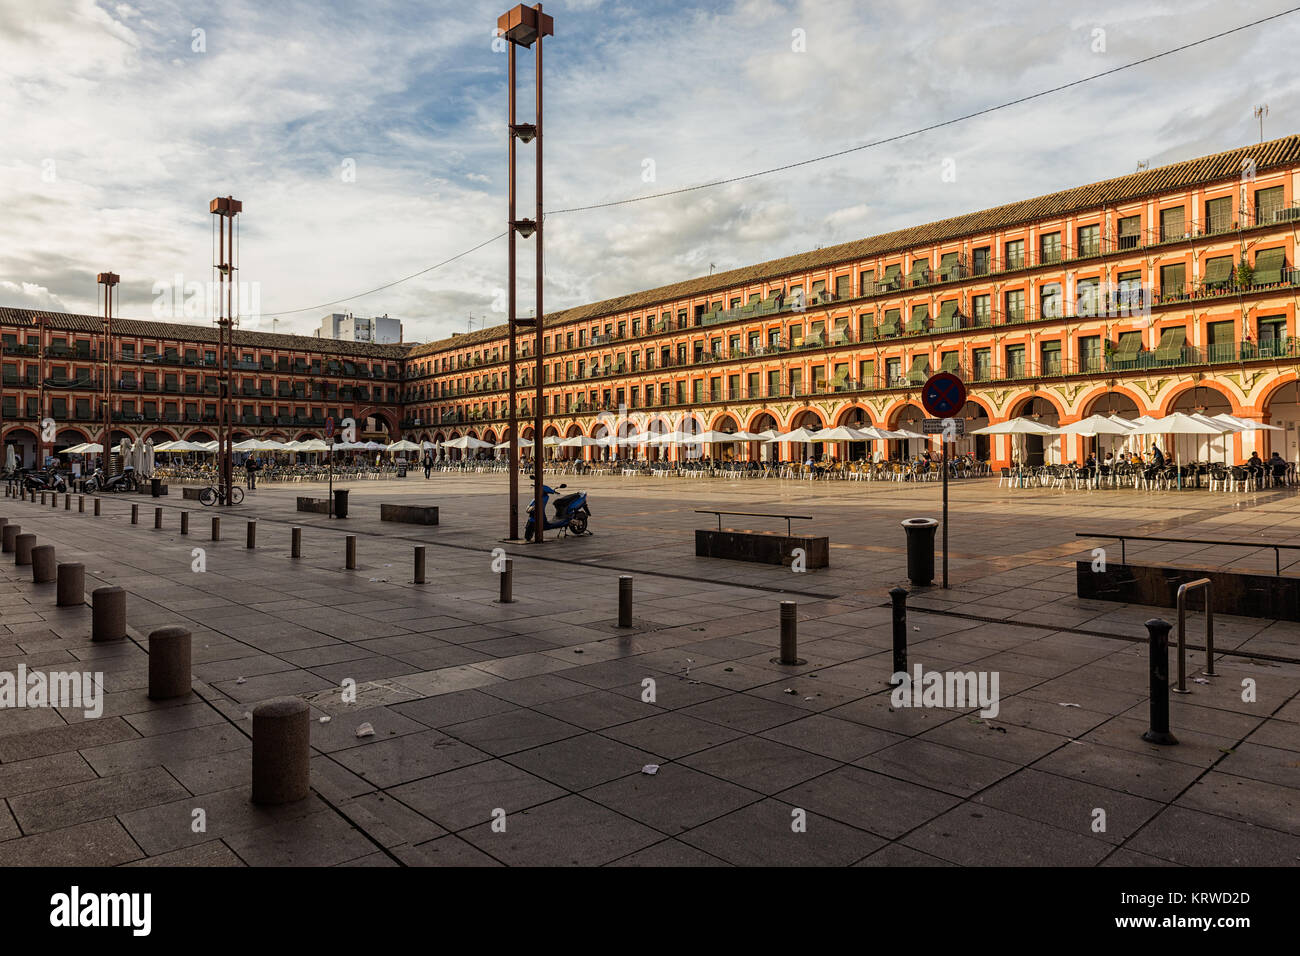 CORDOBA. SPAIN. October 28, 2015: The Plaza de la Corredera is one of the places most emblematic of the city of - Stock Image